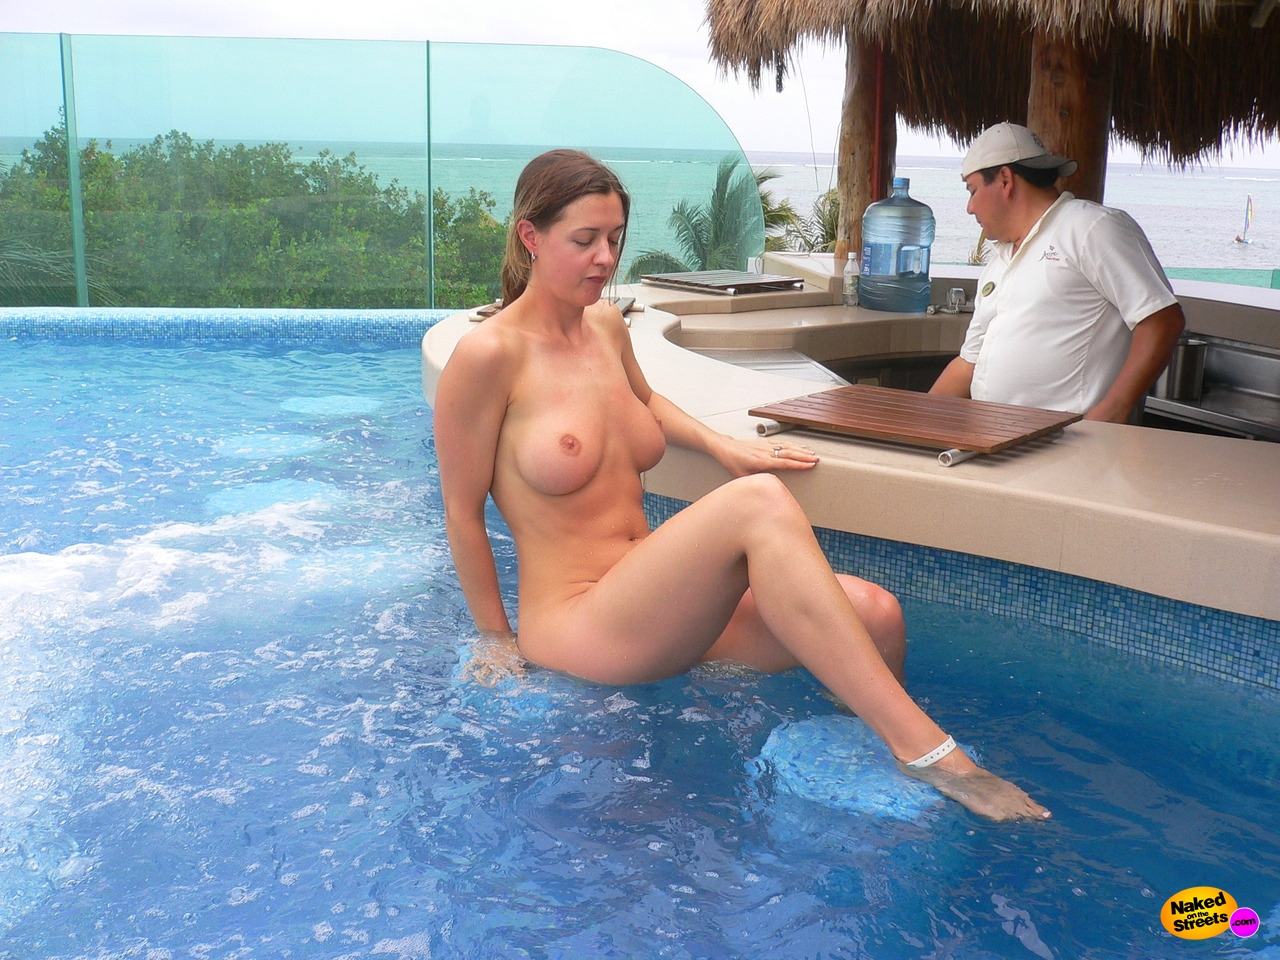 Impossible. mom nude at pool